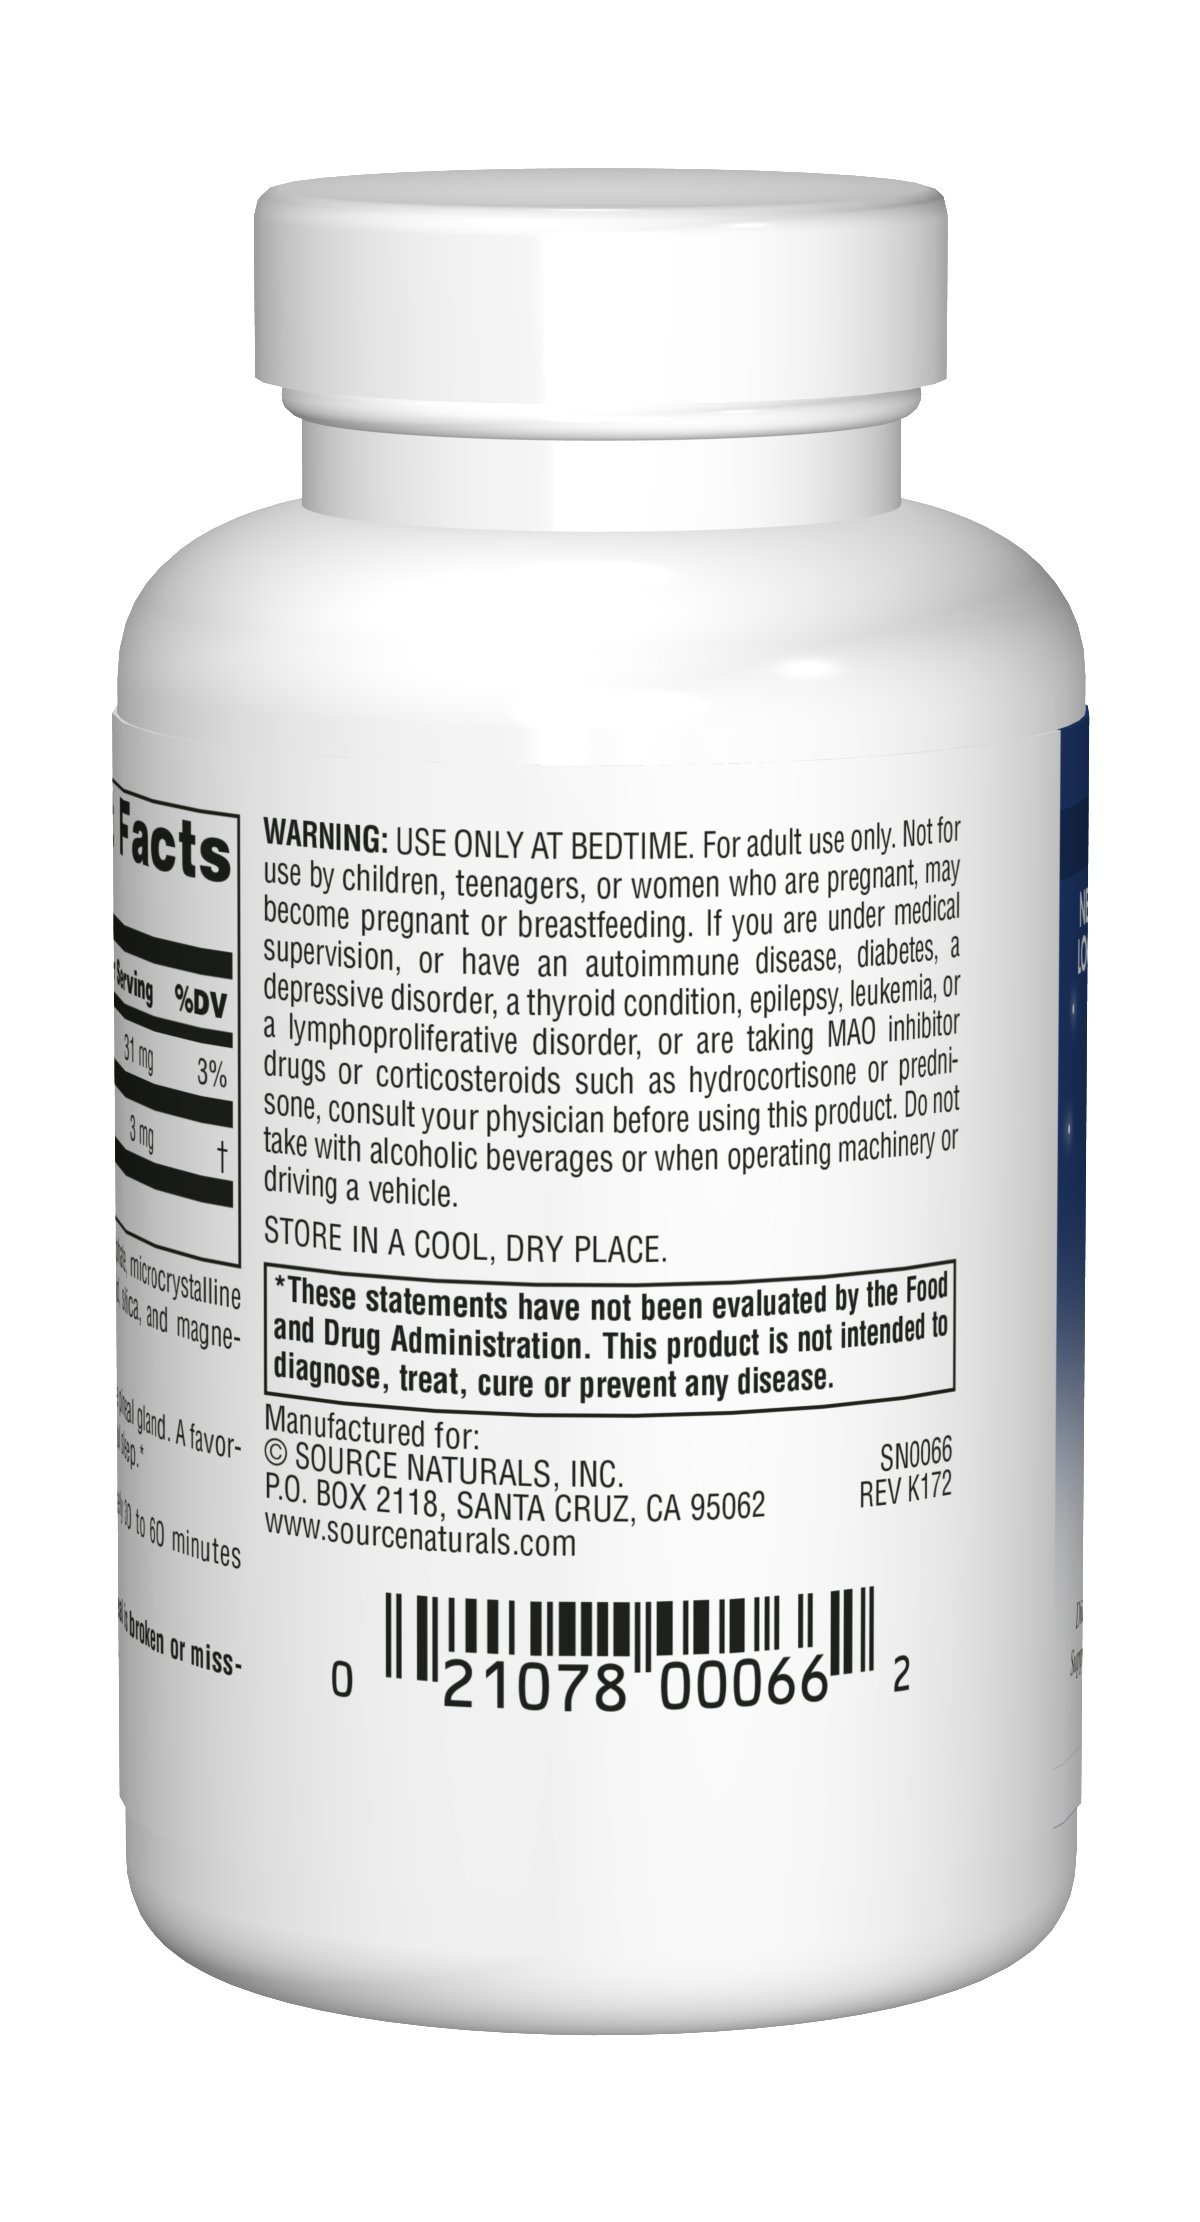 Source Naturals Melatonin 3mg - Sustained Release - 120 Tablets by Source Naturals (Image #2)